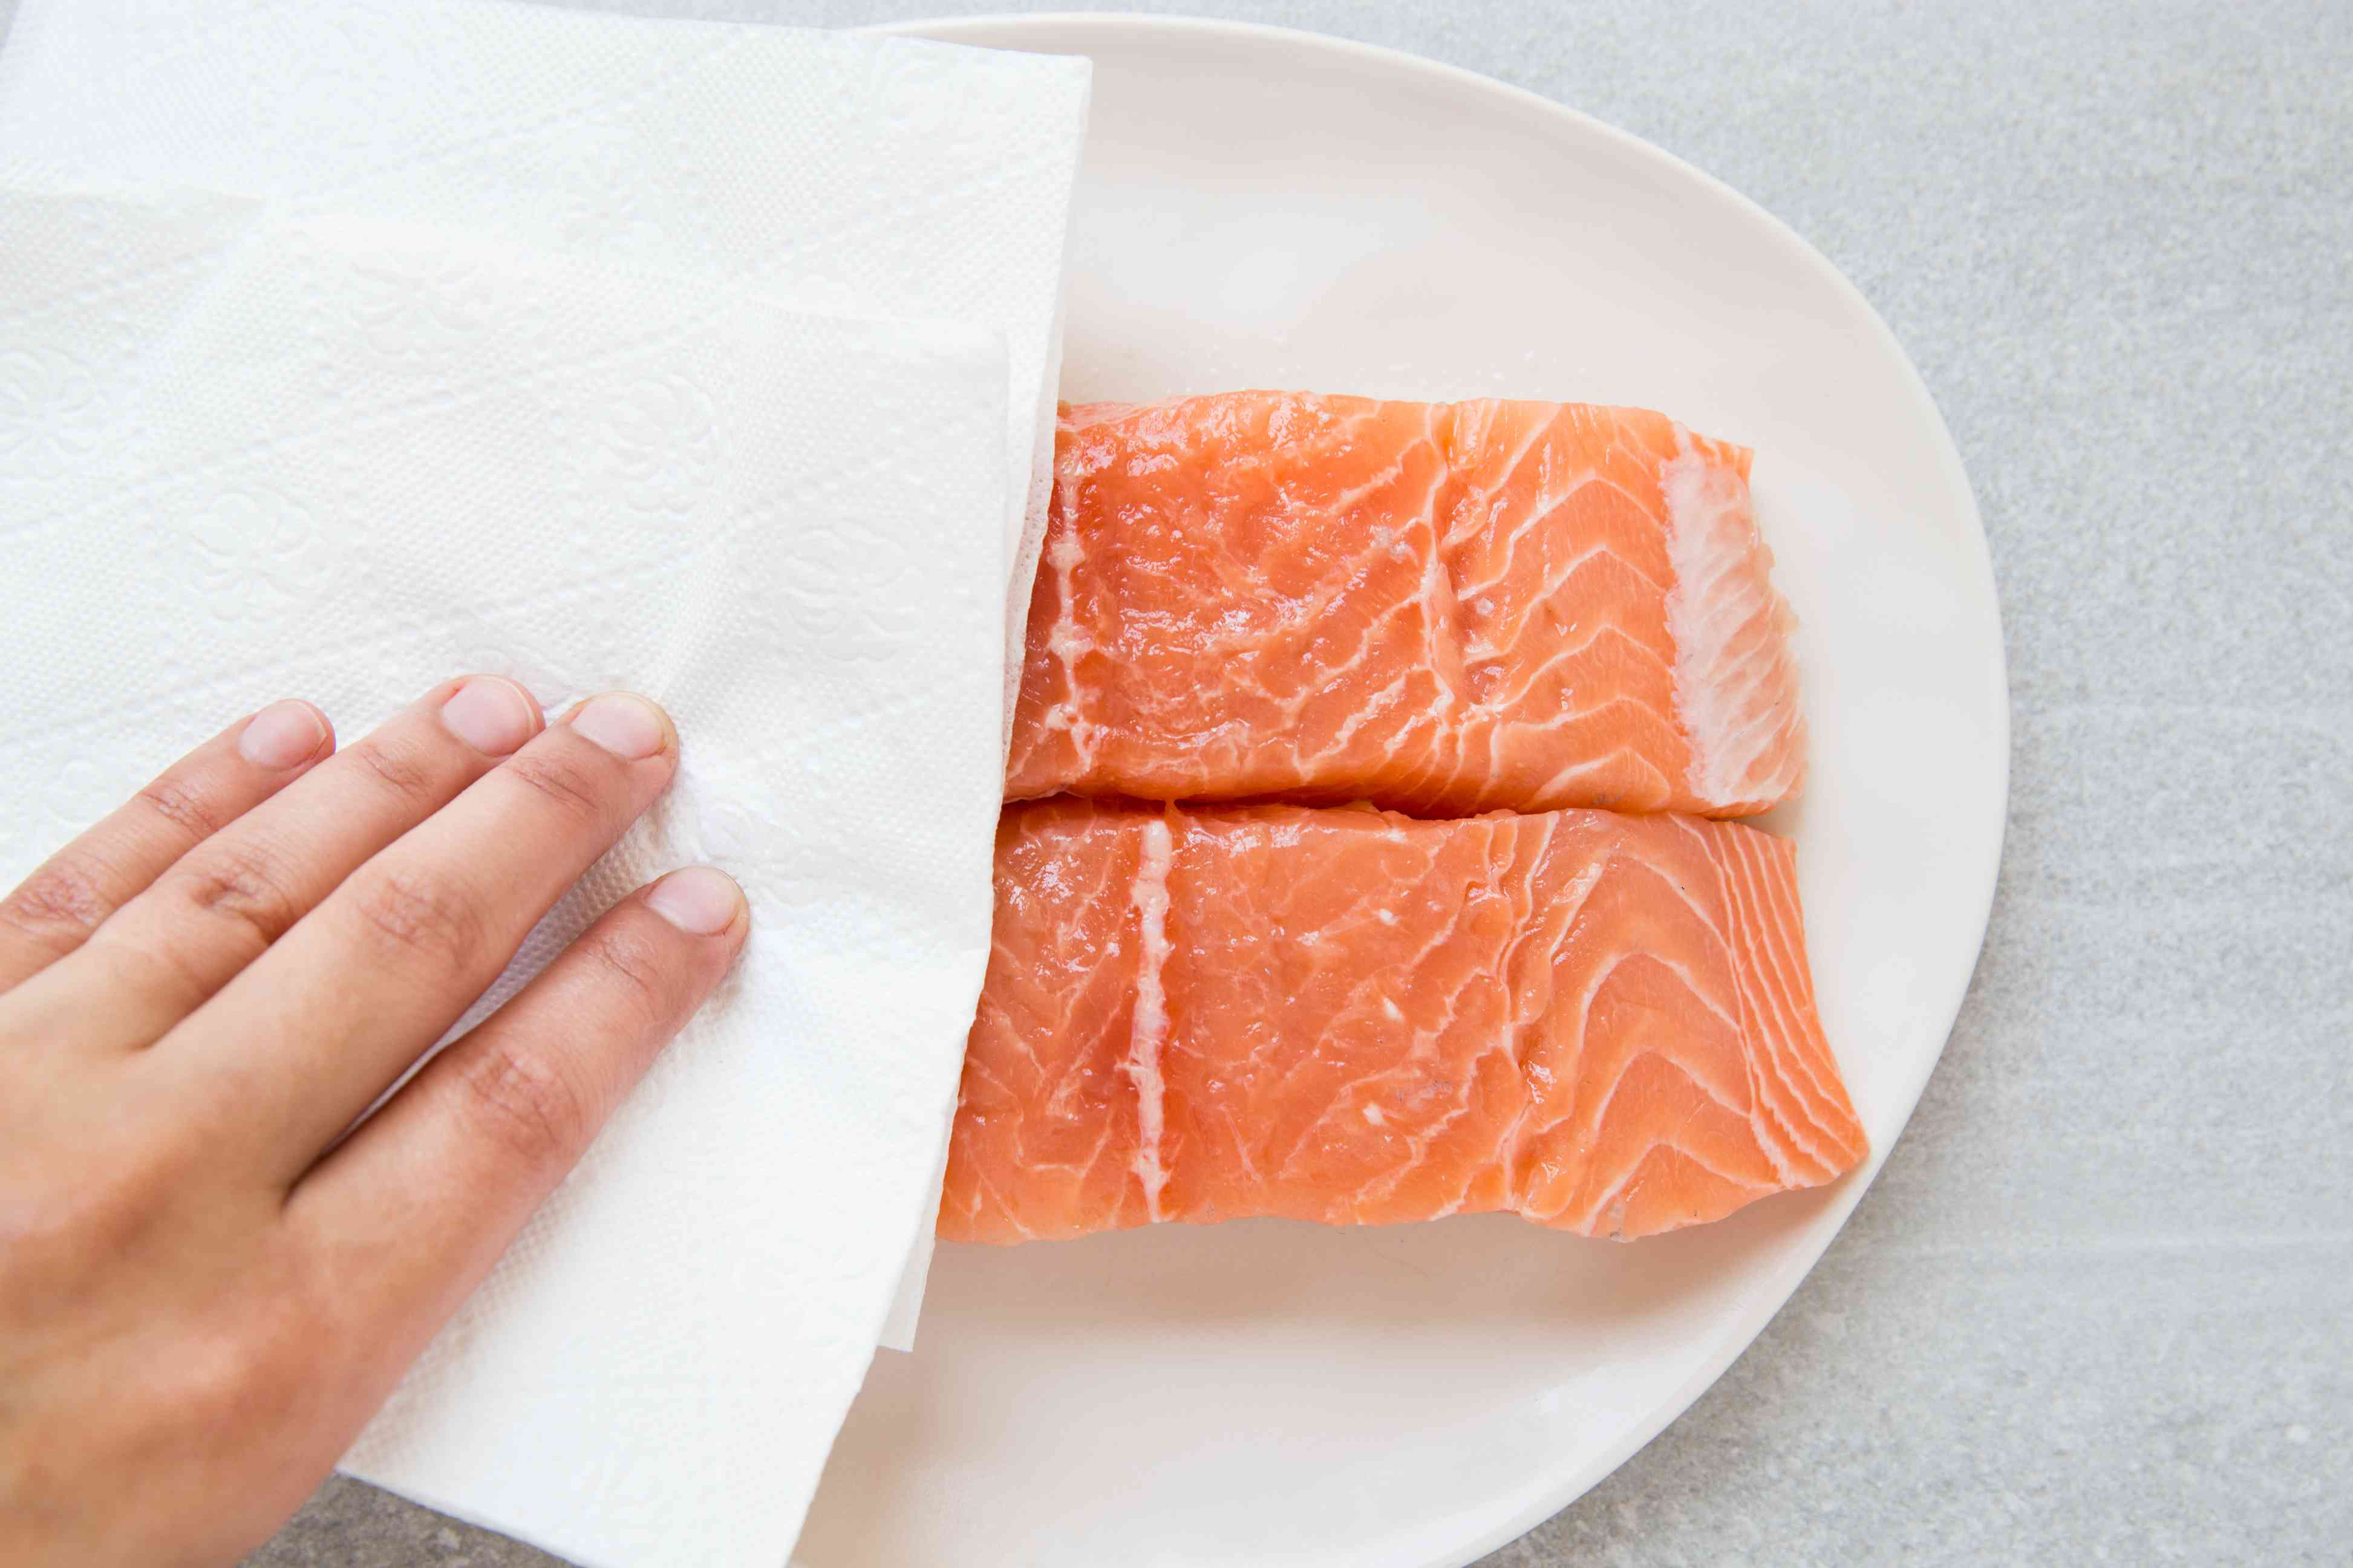 Pat the salmon fillets dry